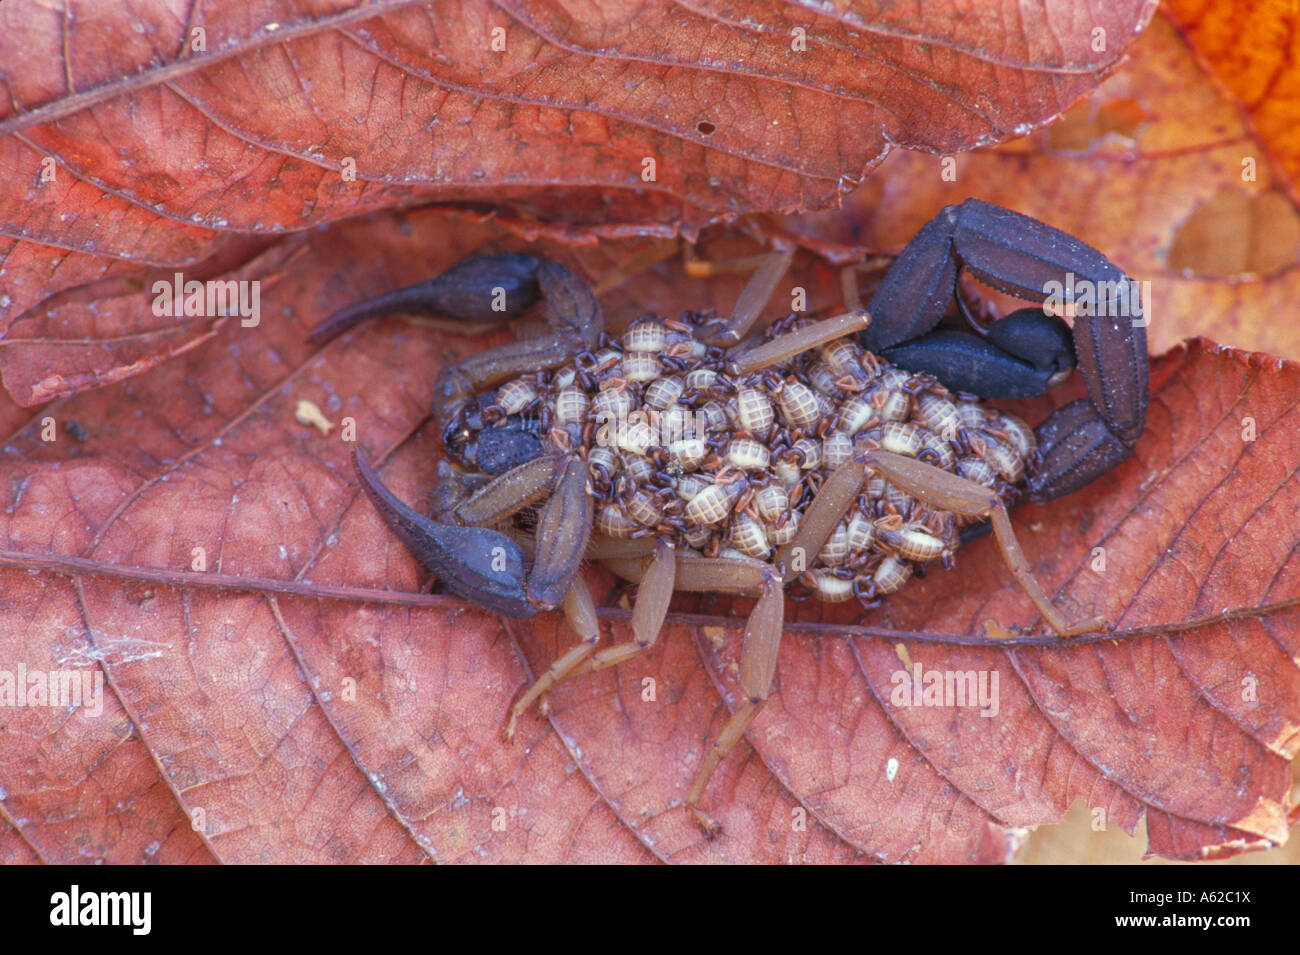 Baby Scorpion Stock Photos & Baby Scorpion Stock Images - Alamy